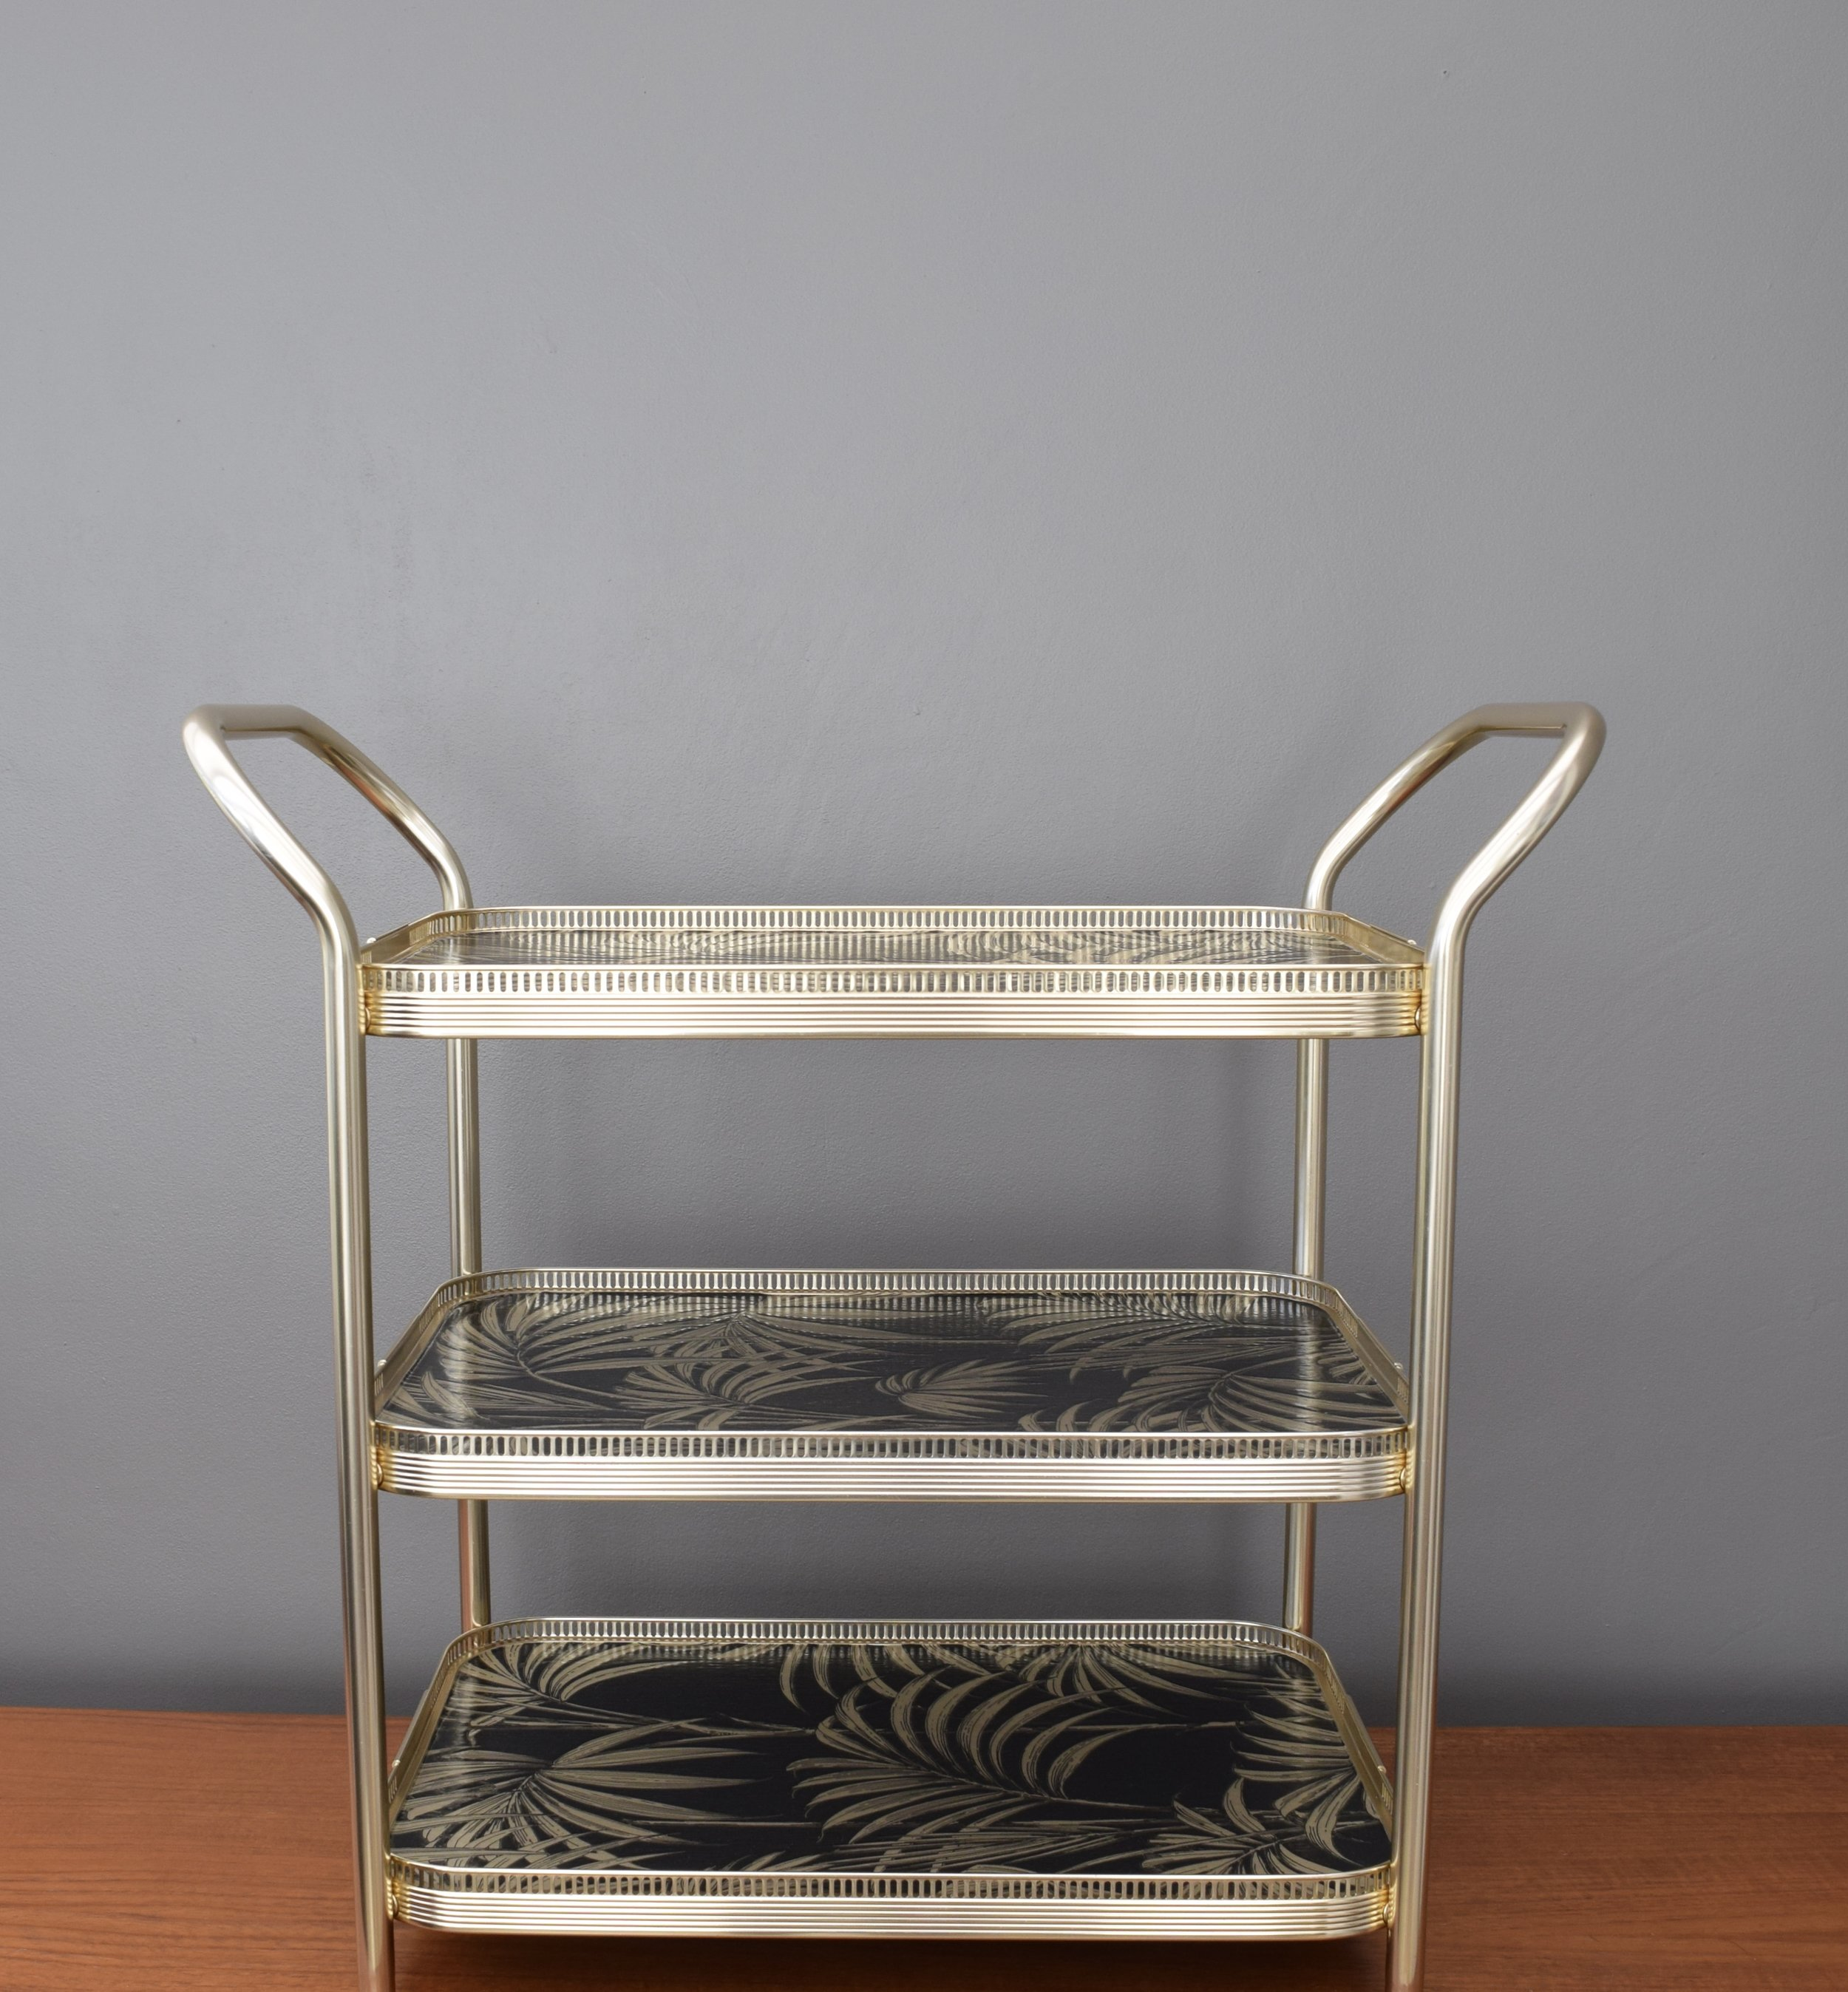 BLACK AND GOLD PALM DESIGN DRINKS TROLLEY